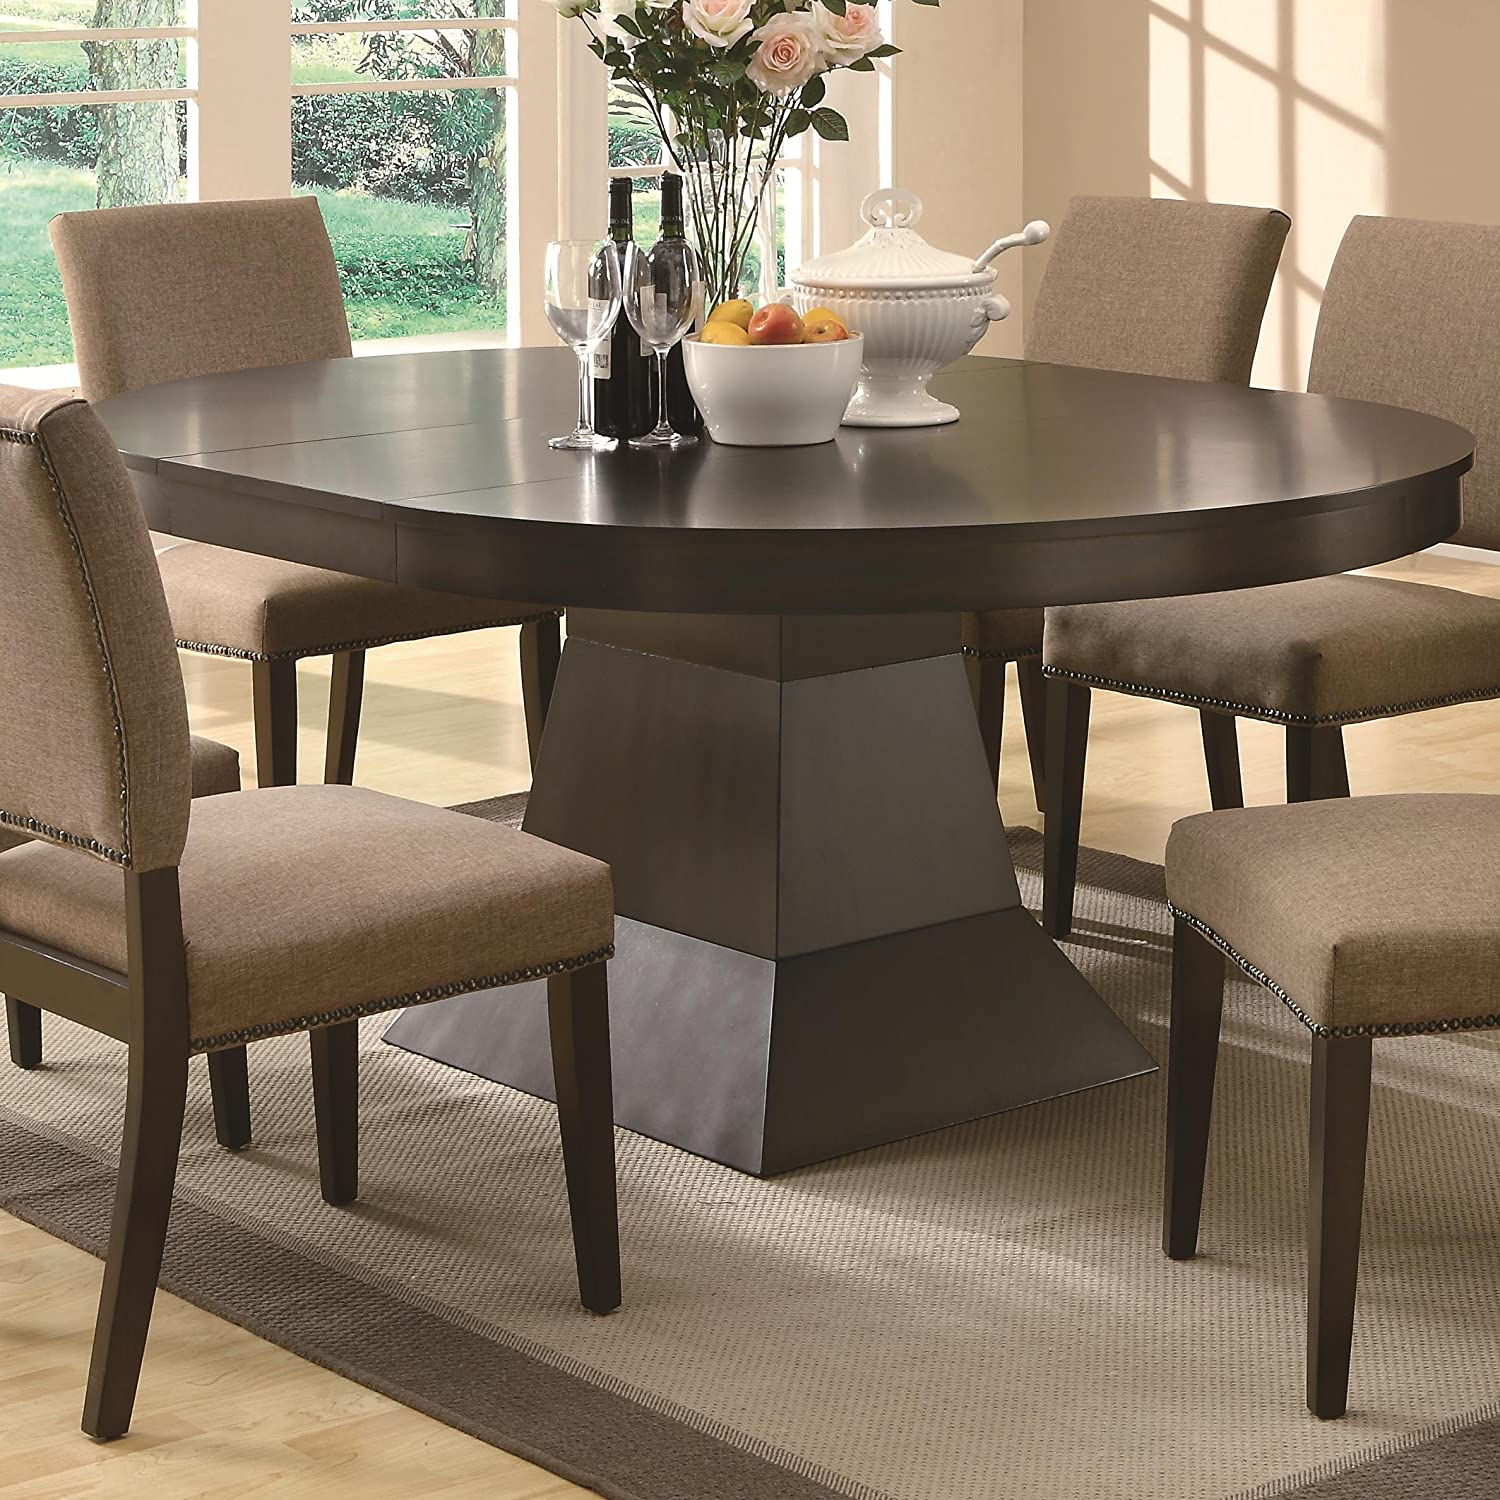 amazoncom myrtle dining oval table w extension in coffee brown by coaster tables